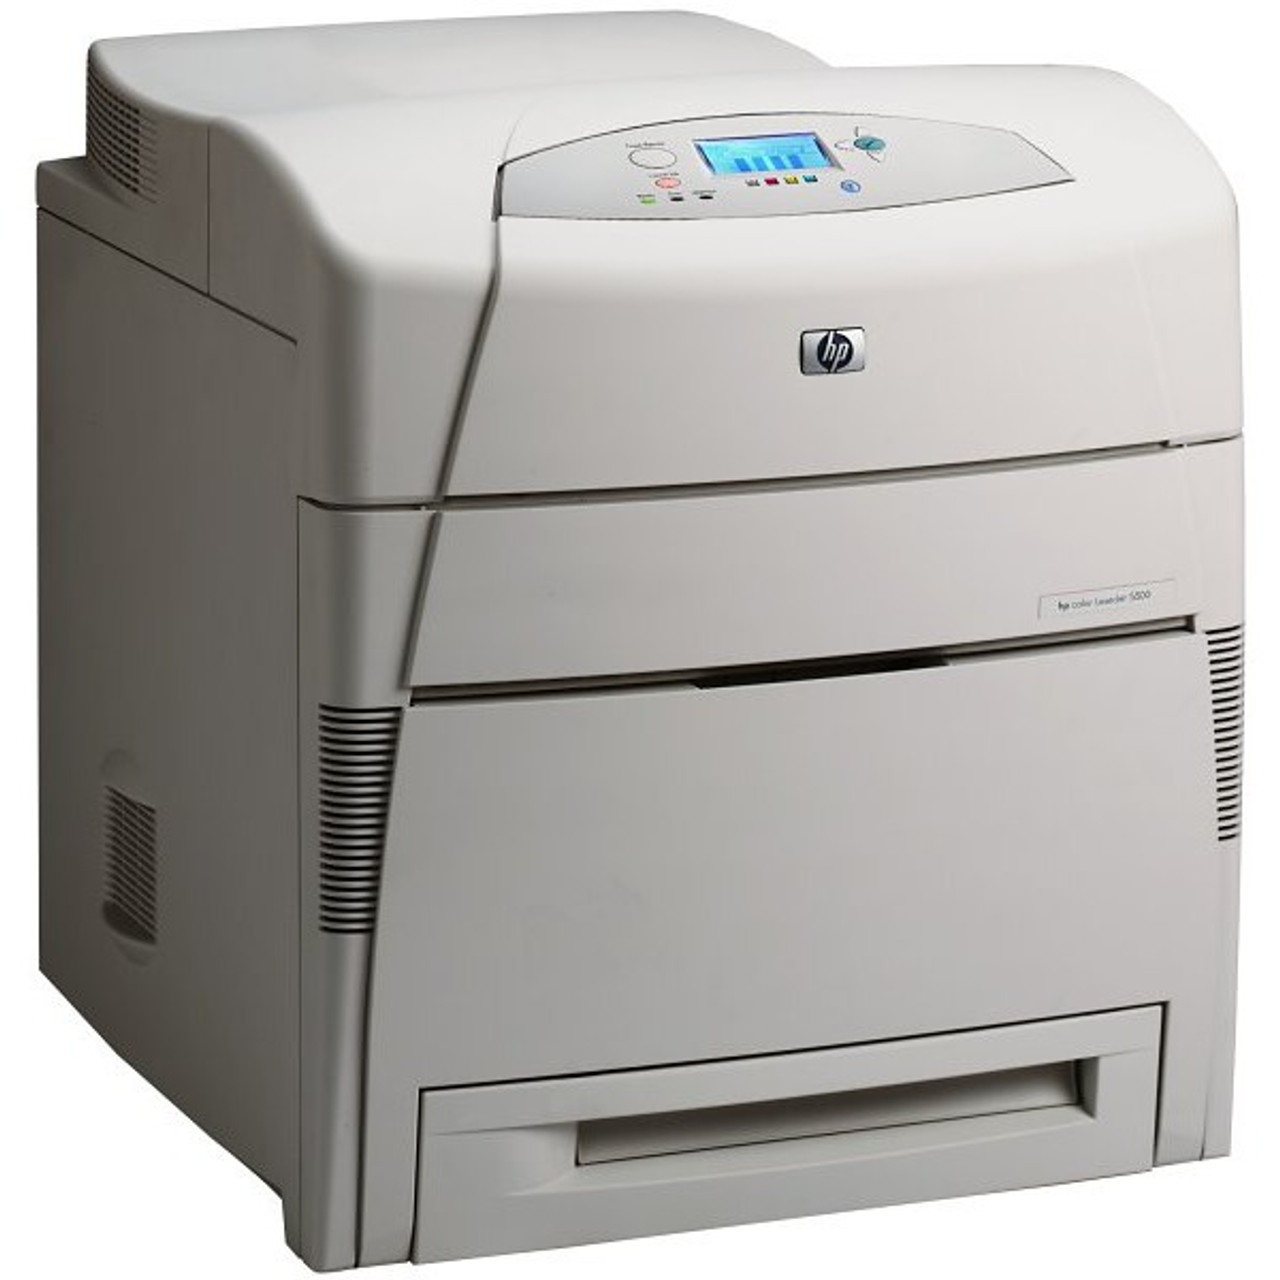 HP Color LaserJet 5500dn - C9657A - HP Laser Printer for sale